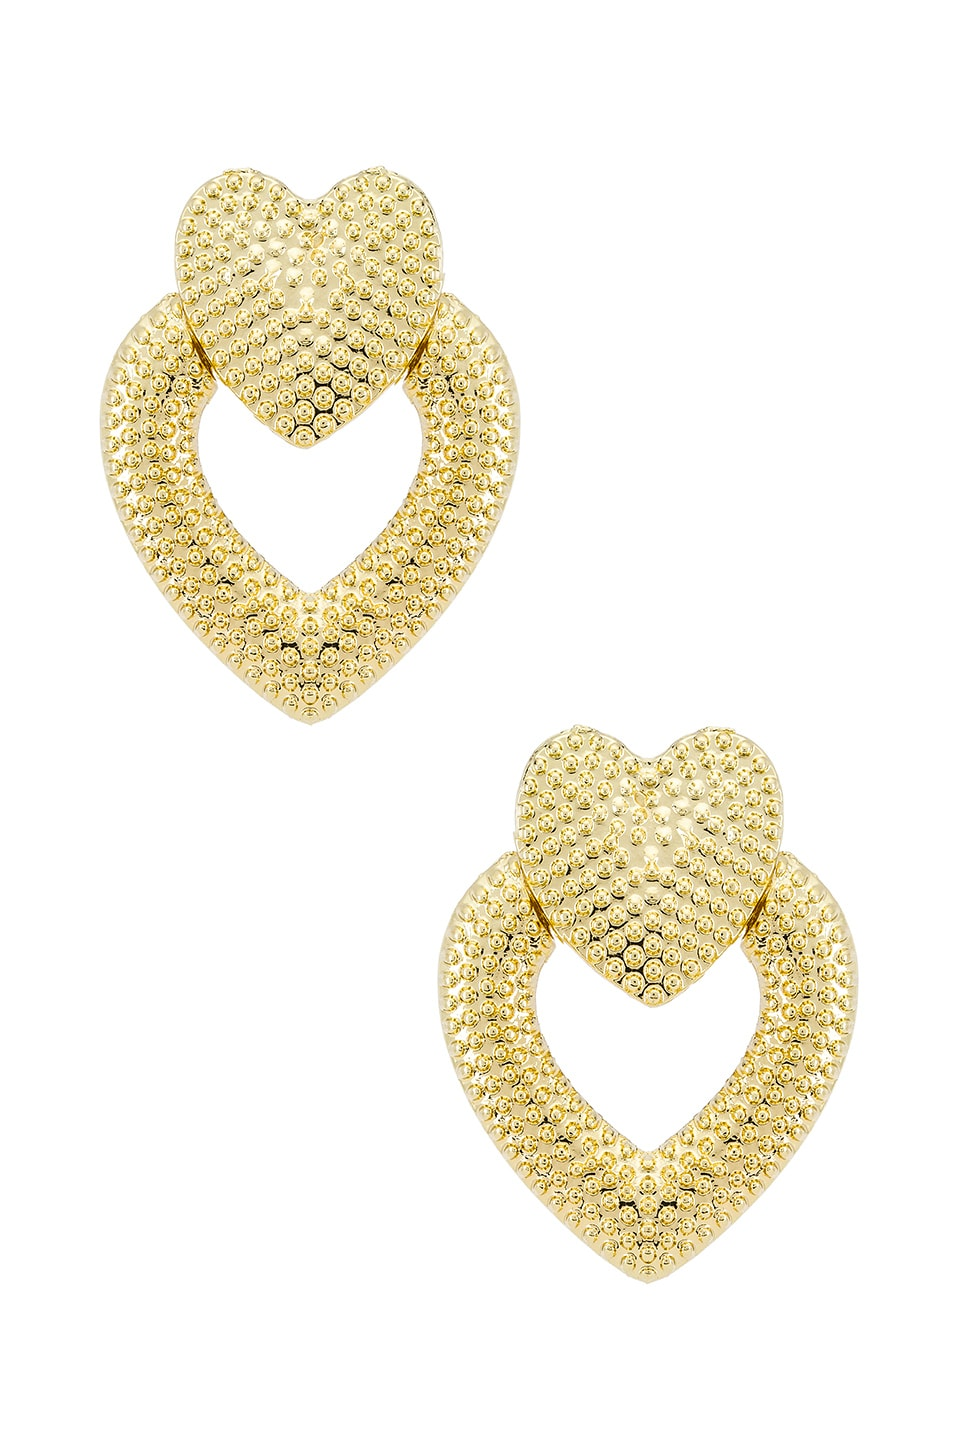 SHASHI Heart Knocker Earrings in Gold